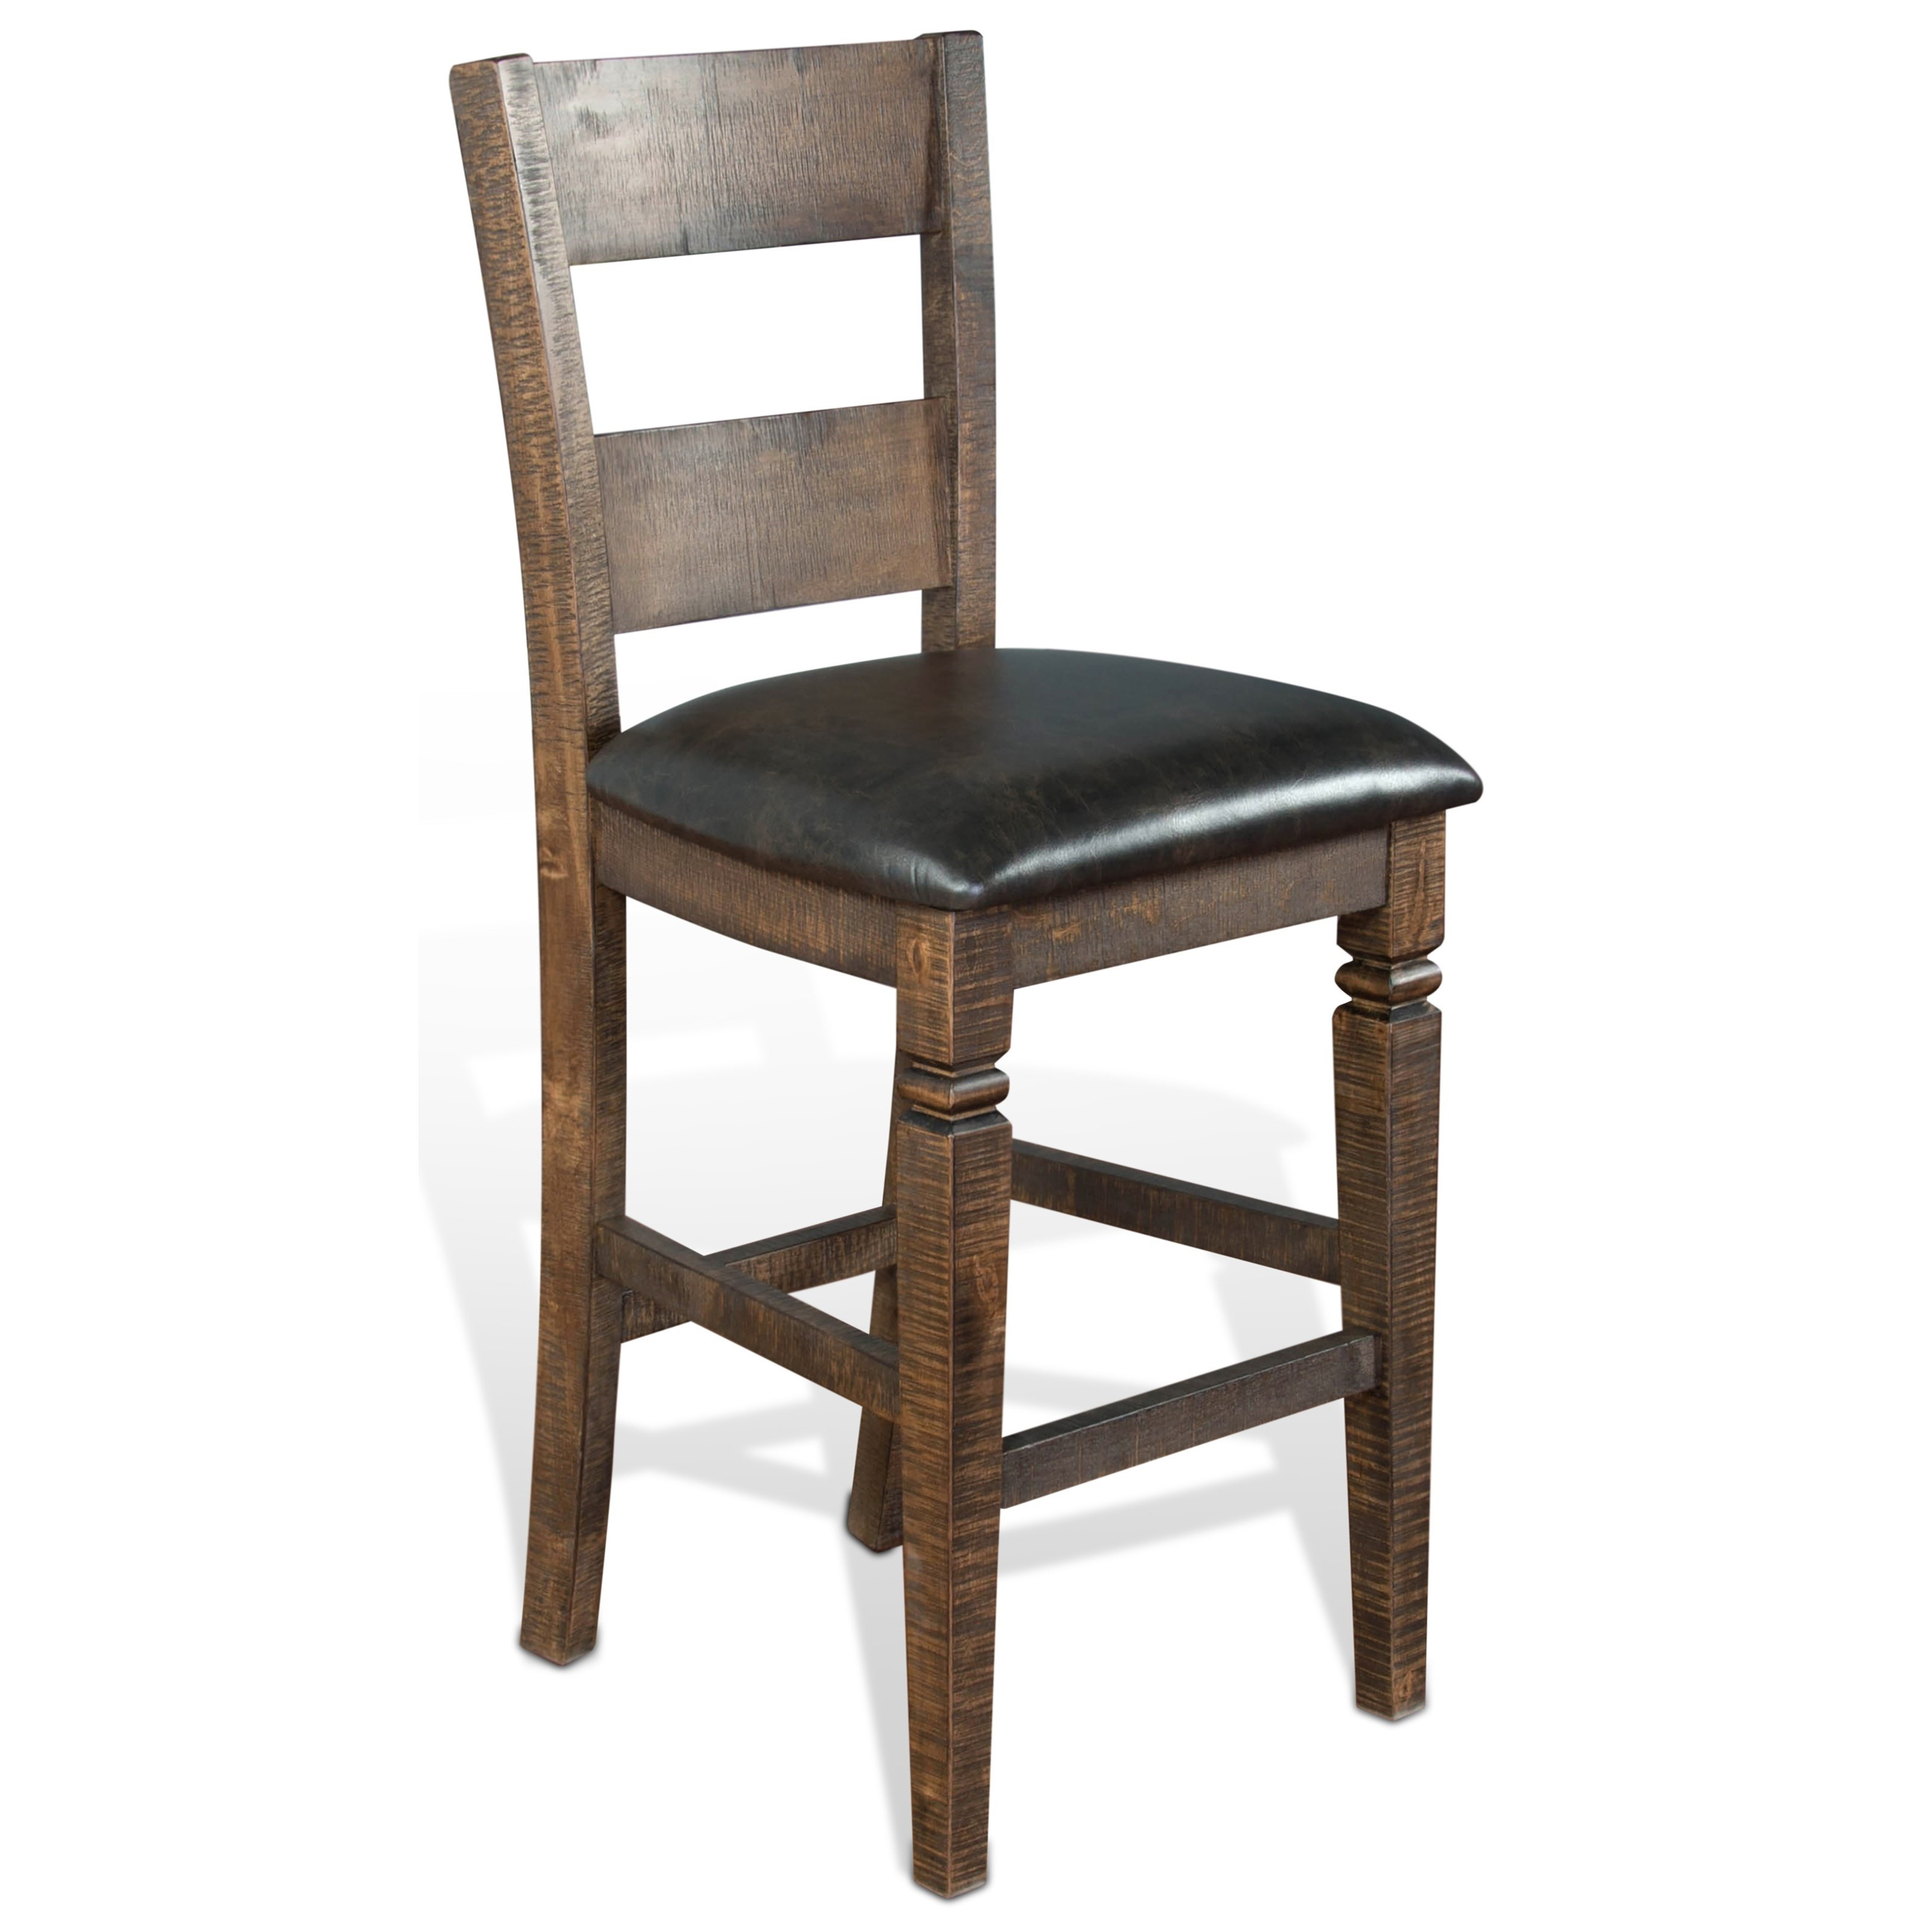 Homestead 2 Ladderback Barstool by Sunny Designs at Stoney Creek Furniture